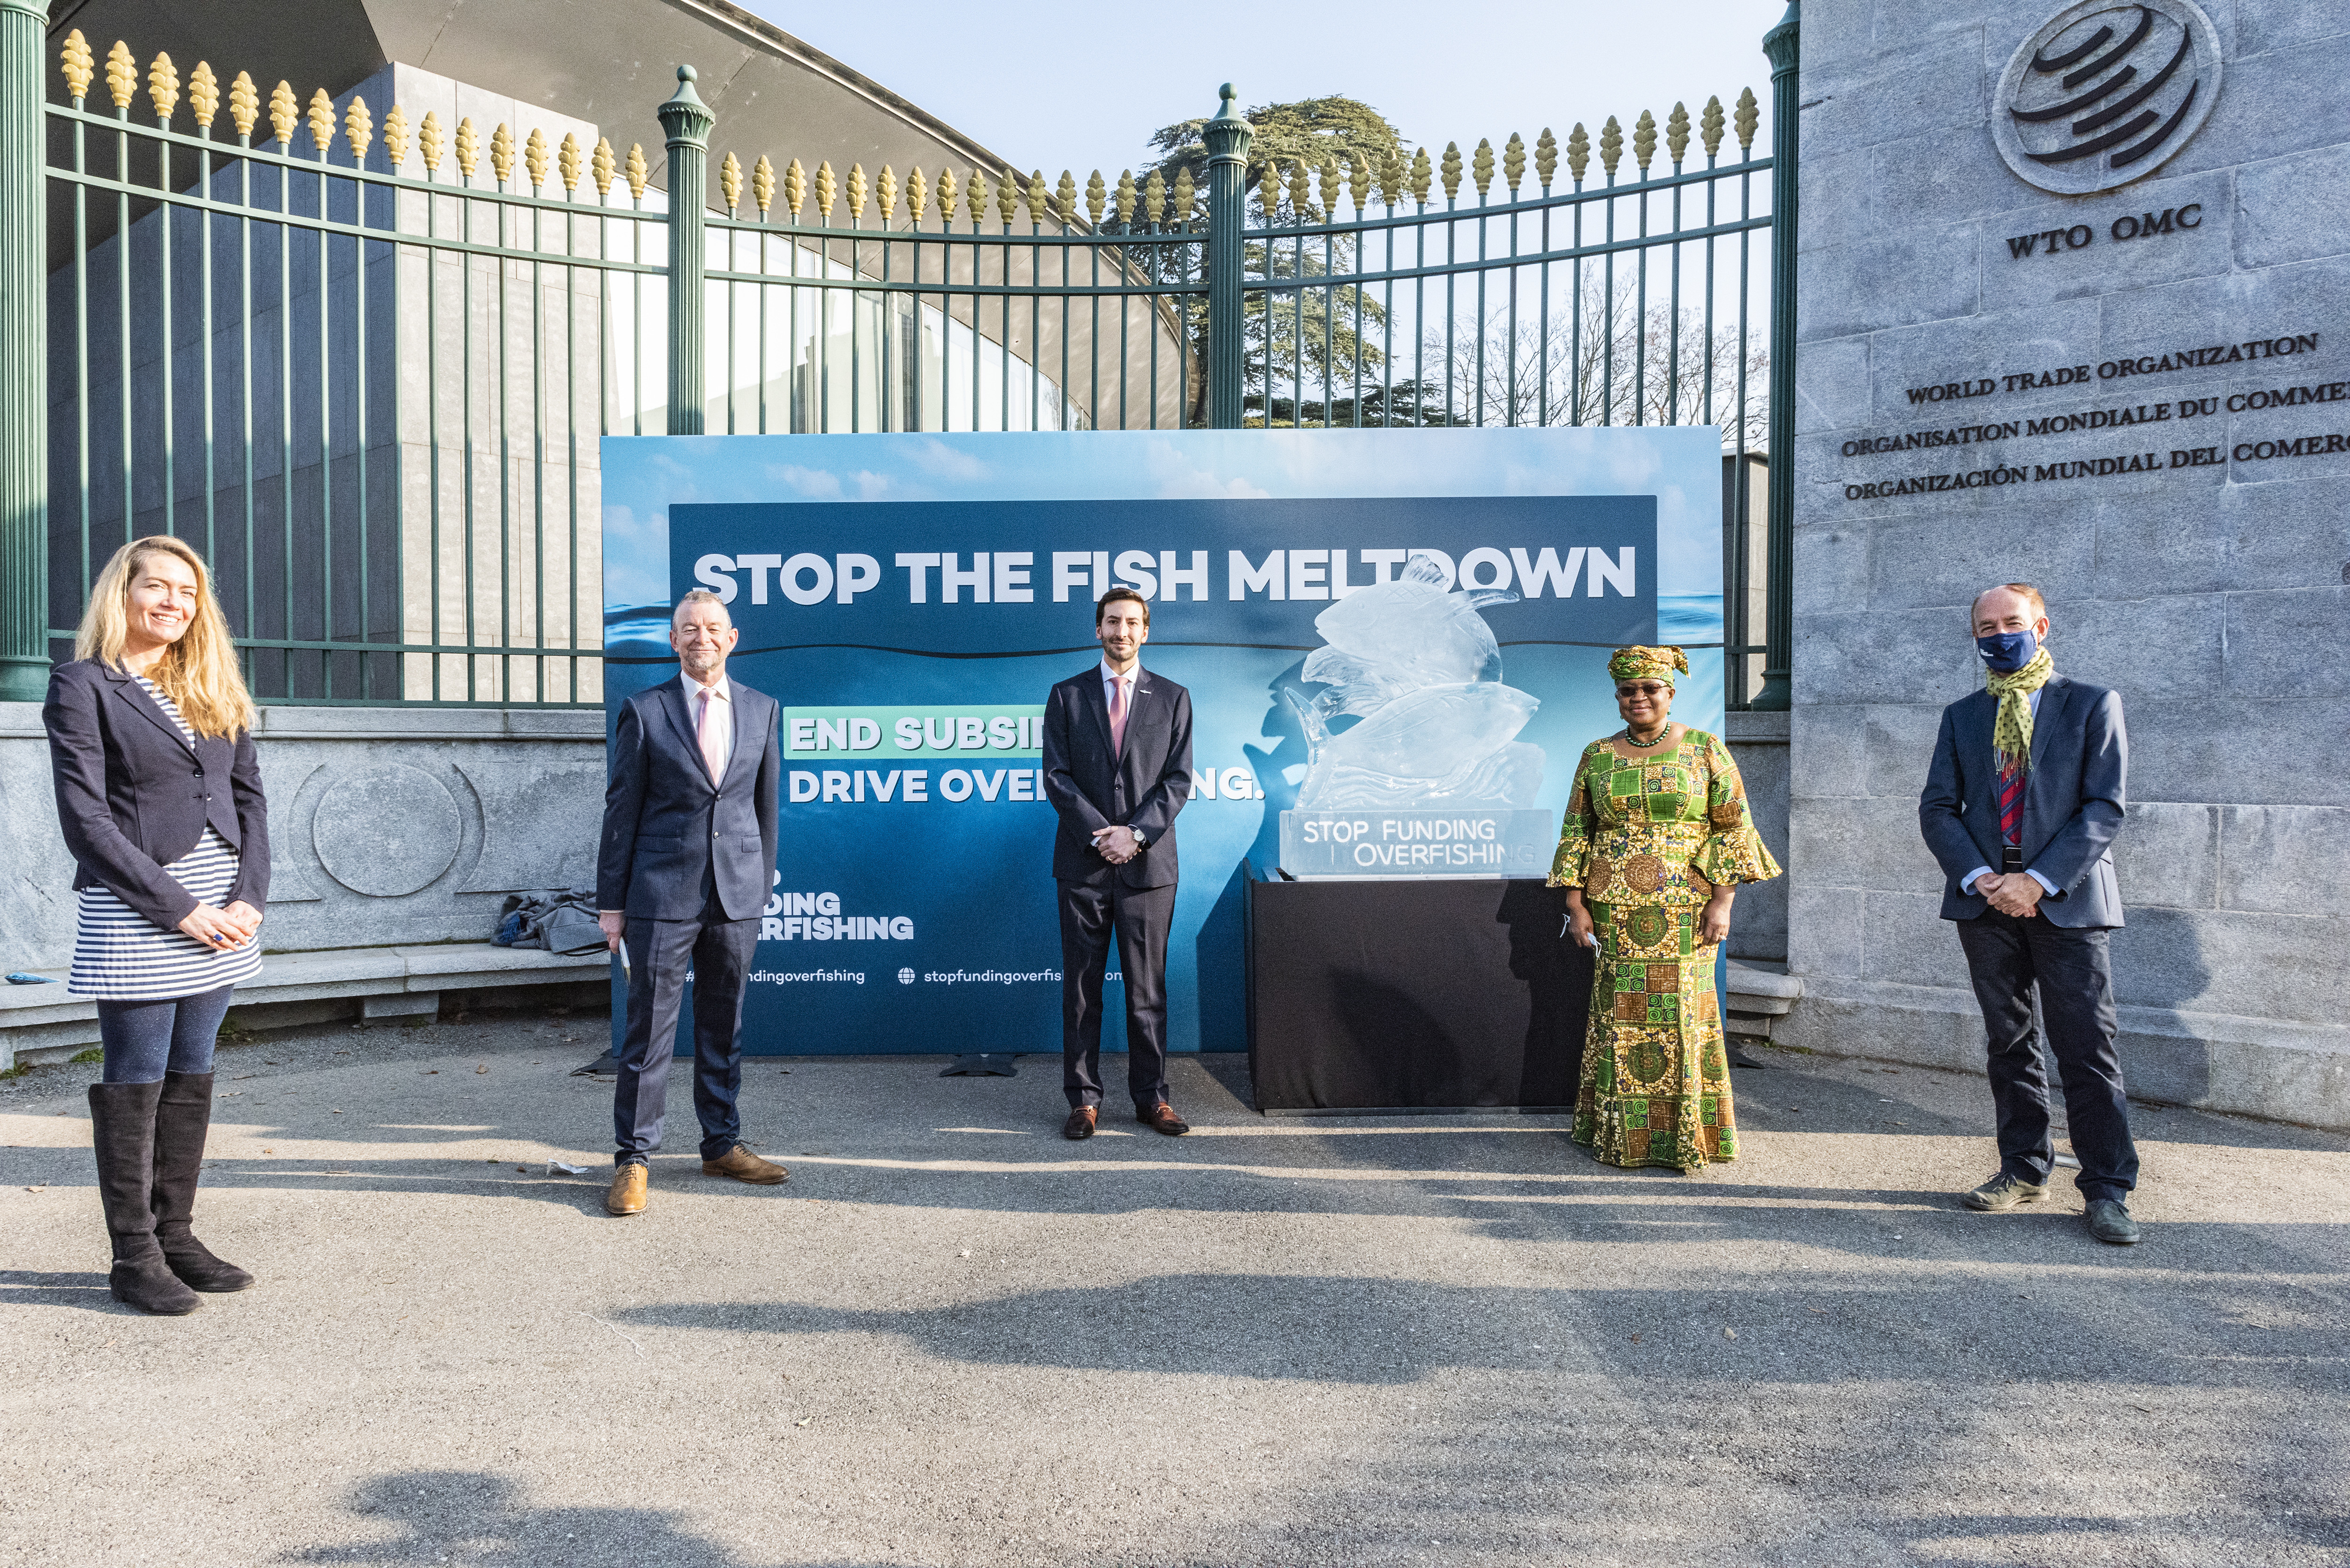 To mark the occasion of newly appointed Director-General Ngozi Okonjo-Iweala's term on 1 March 2021, the Stop Funding Overfishing campaign positioned an ice sculpture of a fish in front of the WTO's HQ.